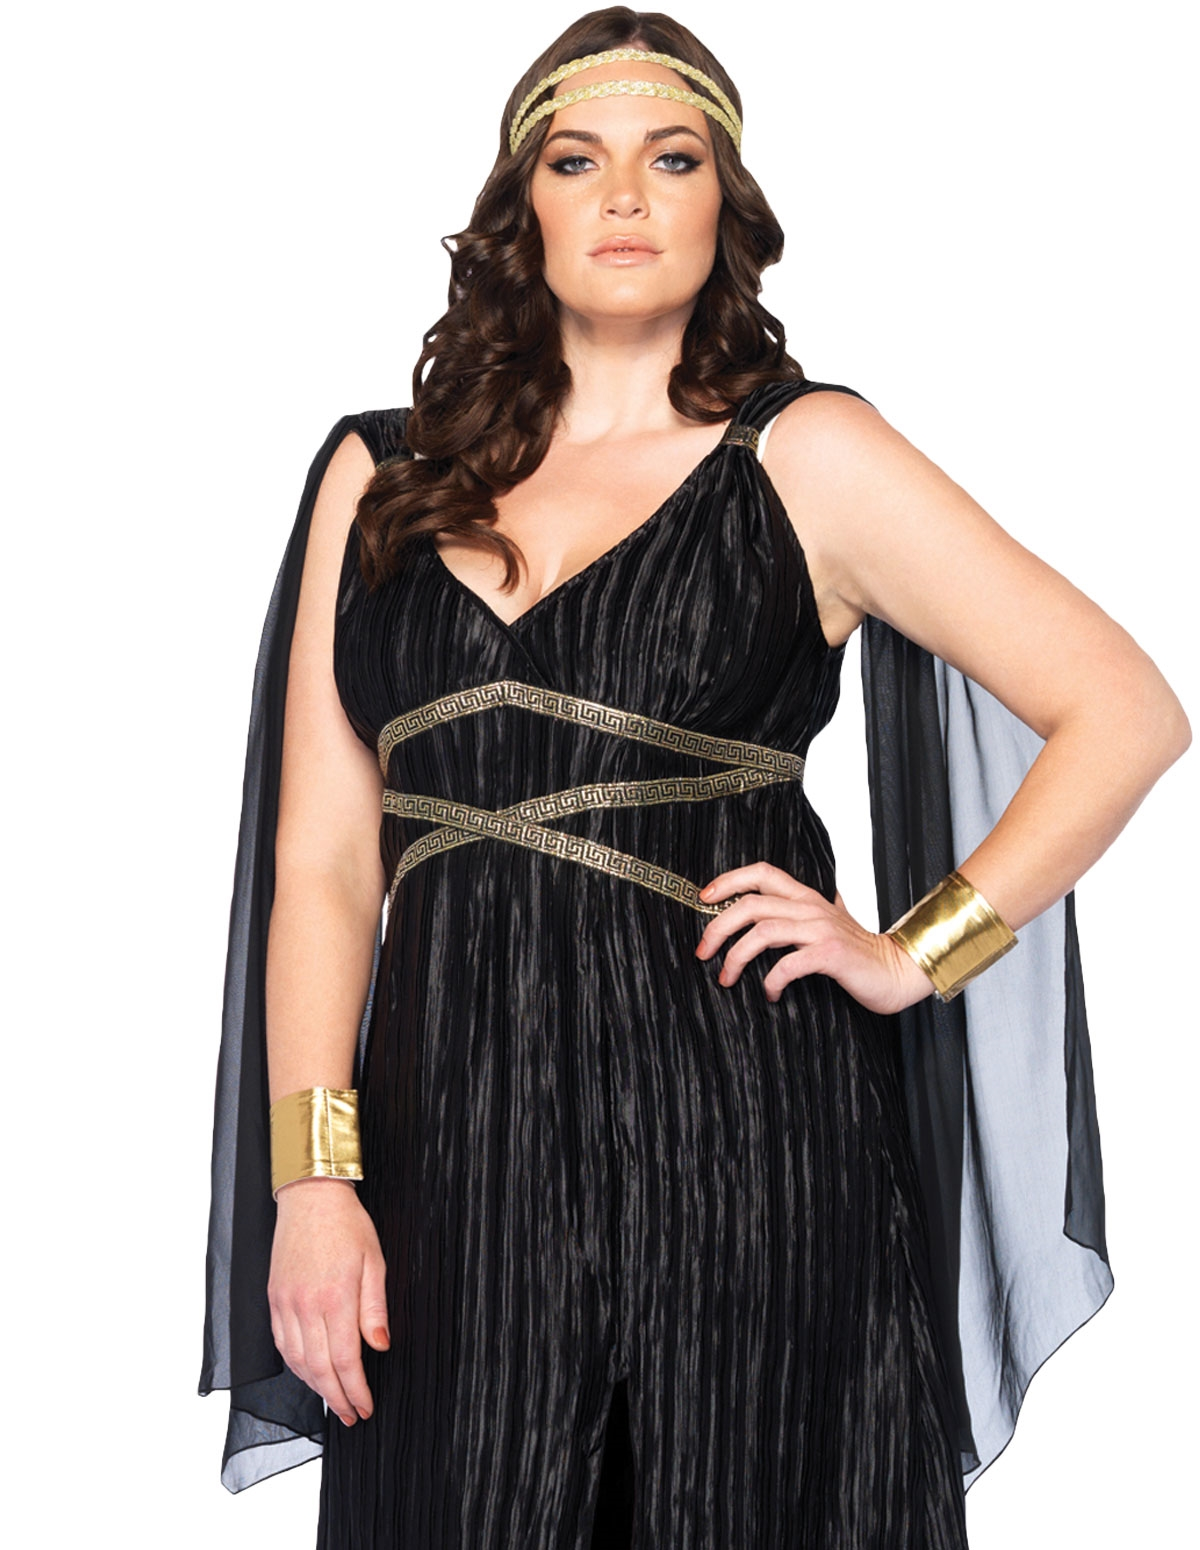 3Pc Dark Goddess Plus Size Costume